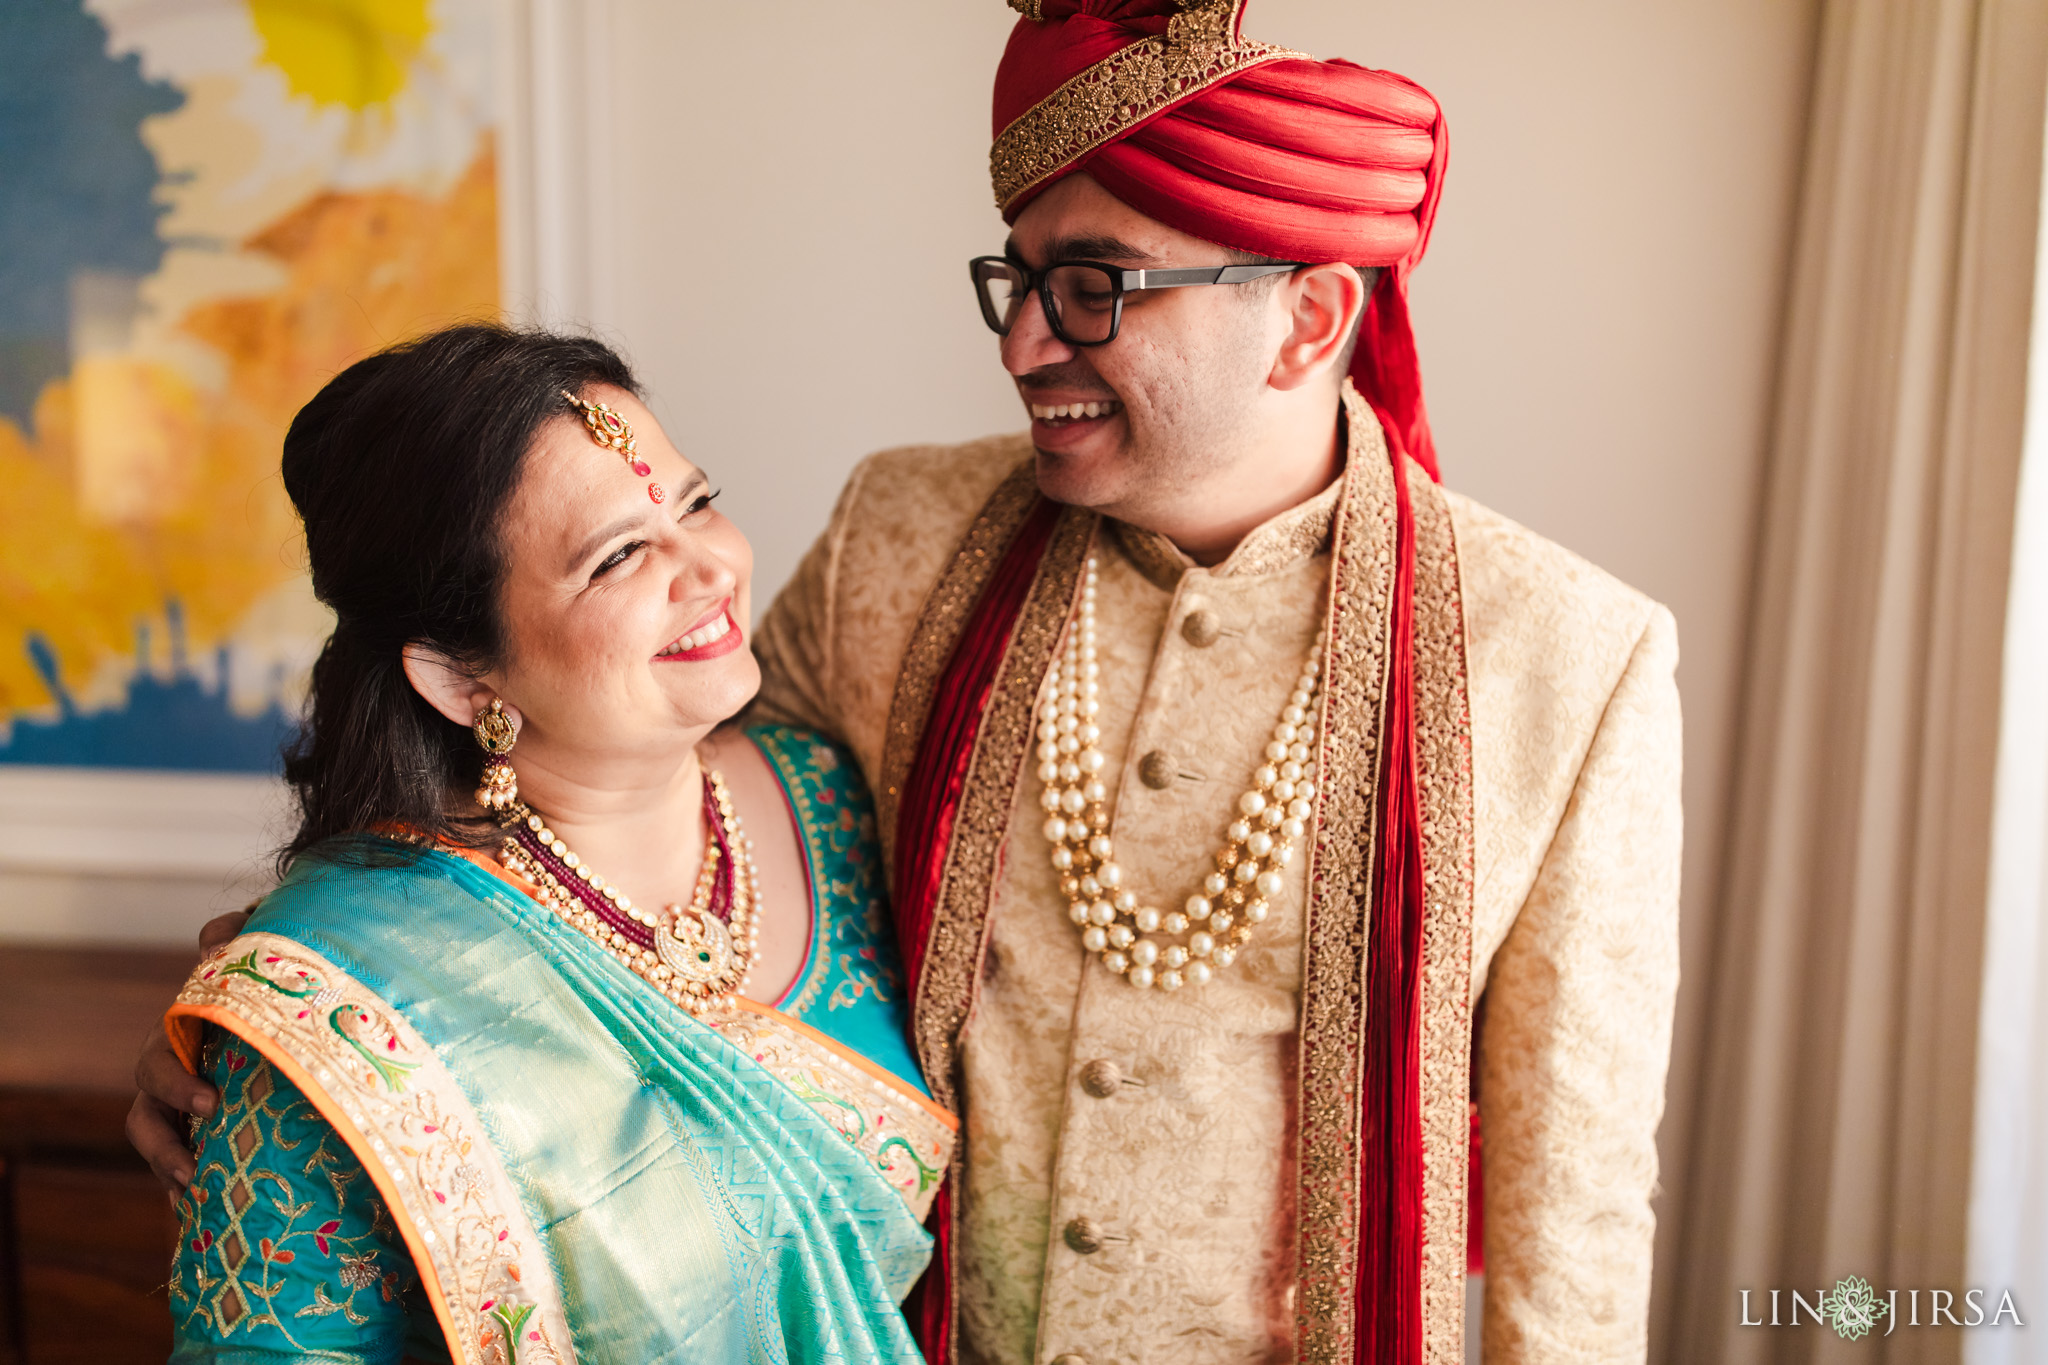 014 Long Beach Performing Arts Center Indian Groom Wedding Photography